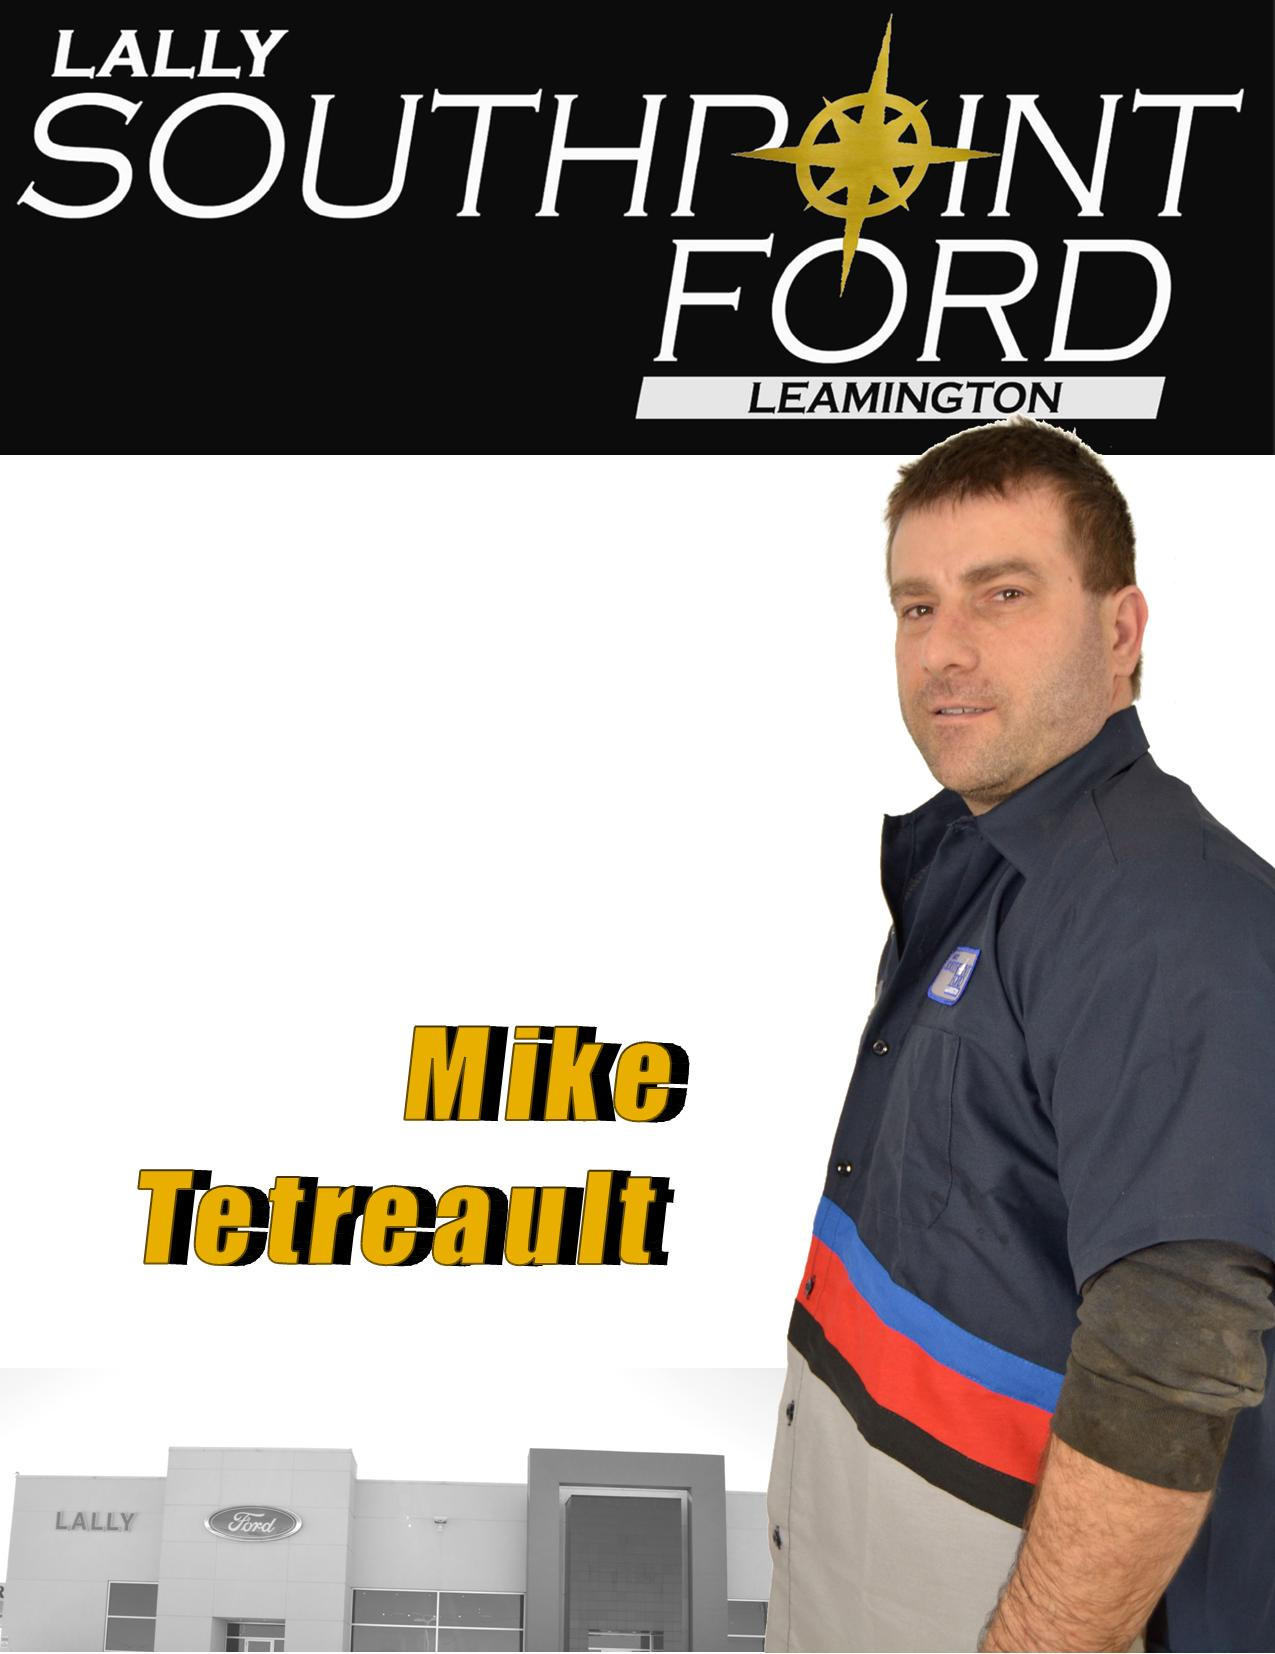 Mike Tetreault